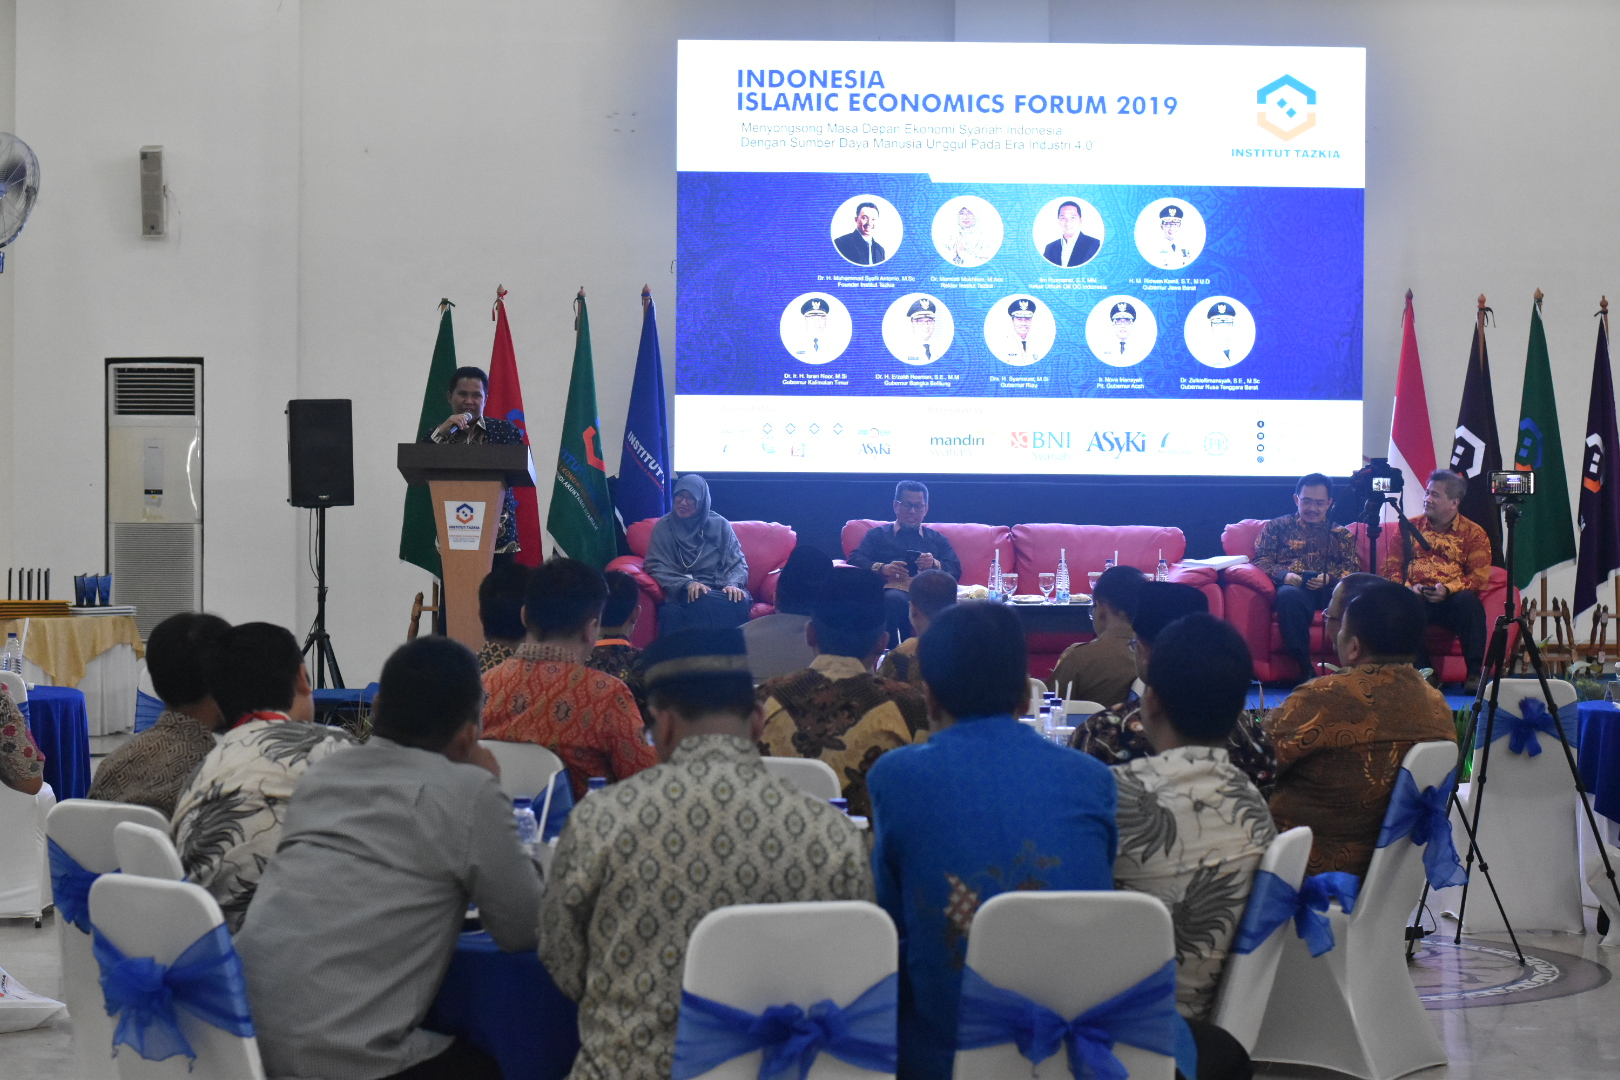 Indonesia Islamic Economics Forum 2019